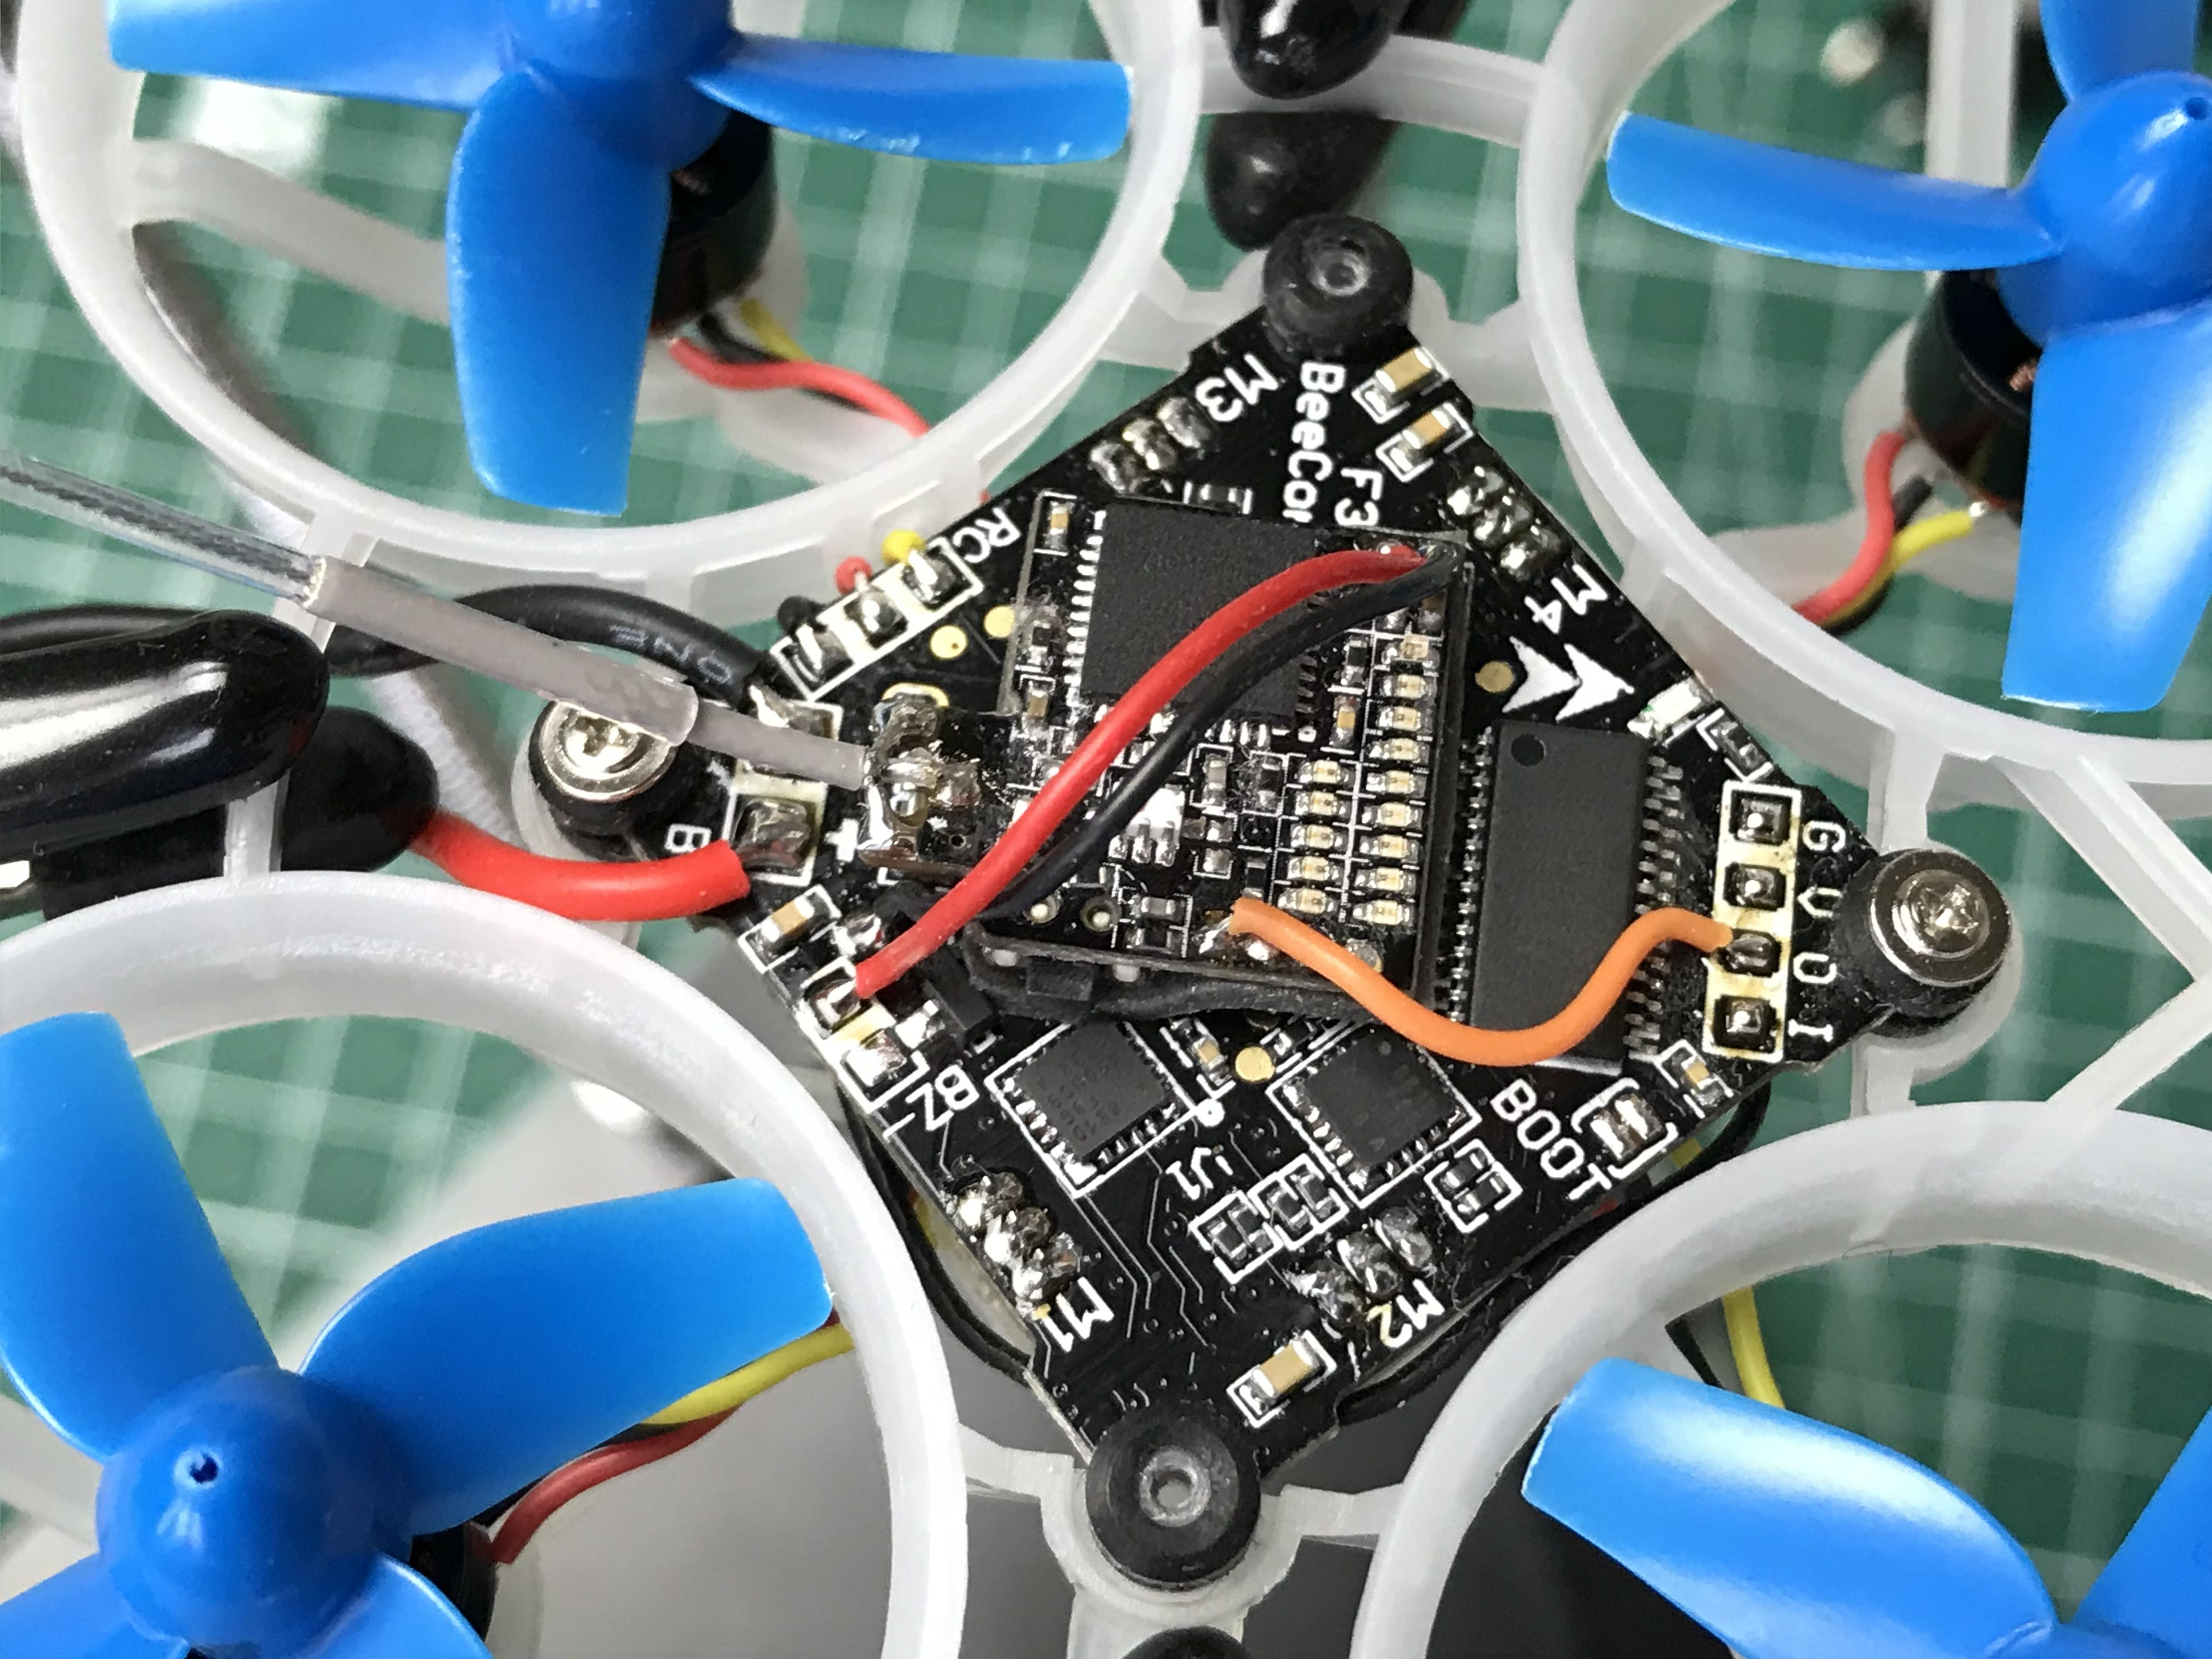 VTX soldered to the flight controller